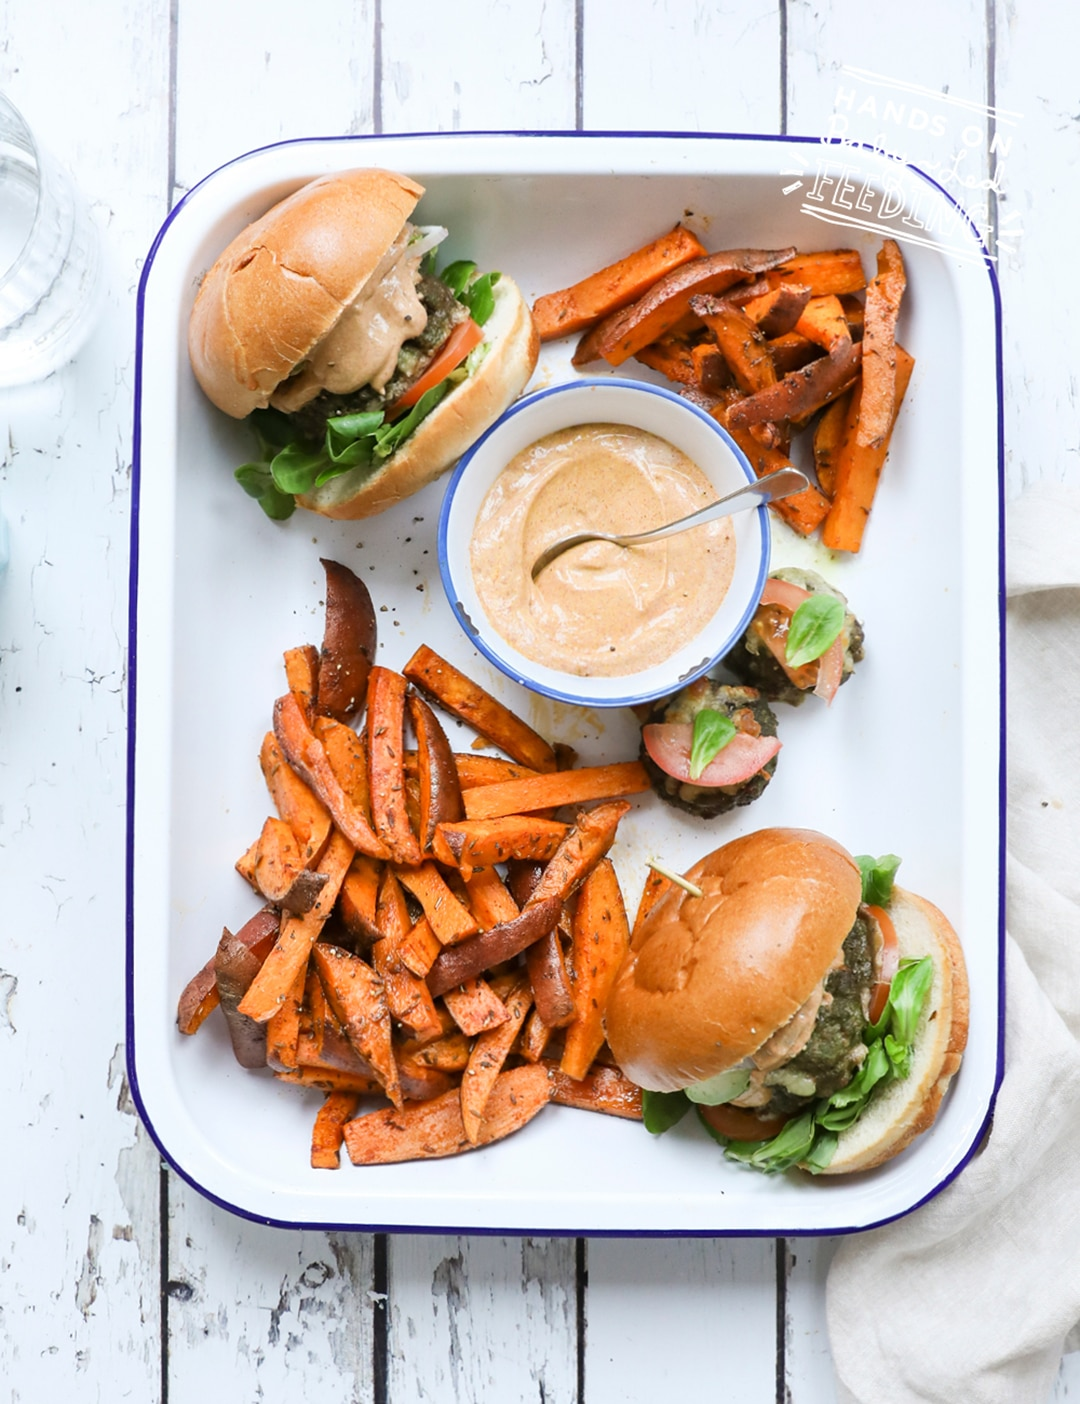 Veggie Loaded Baby Burgers with Cajun Sauce. This little burger is like an entire salad cooked into a slider sized burger! Served with a zesty (not spicy) yogurt based Cajun sauce and crispy-sweet sweet potato fries. #babyledweaning #sliders #bbq #healthyrecipe